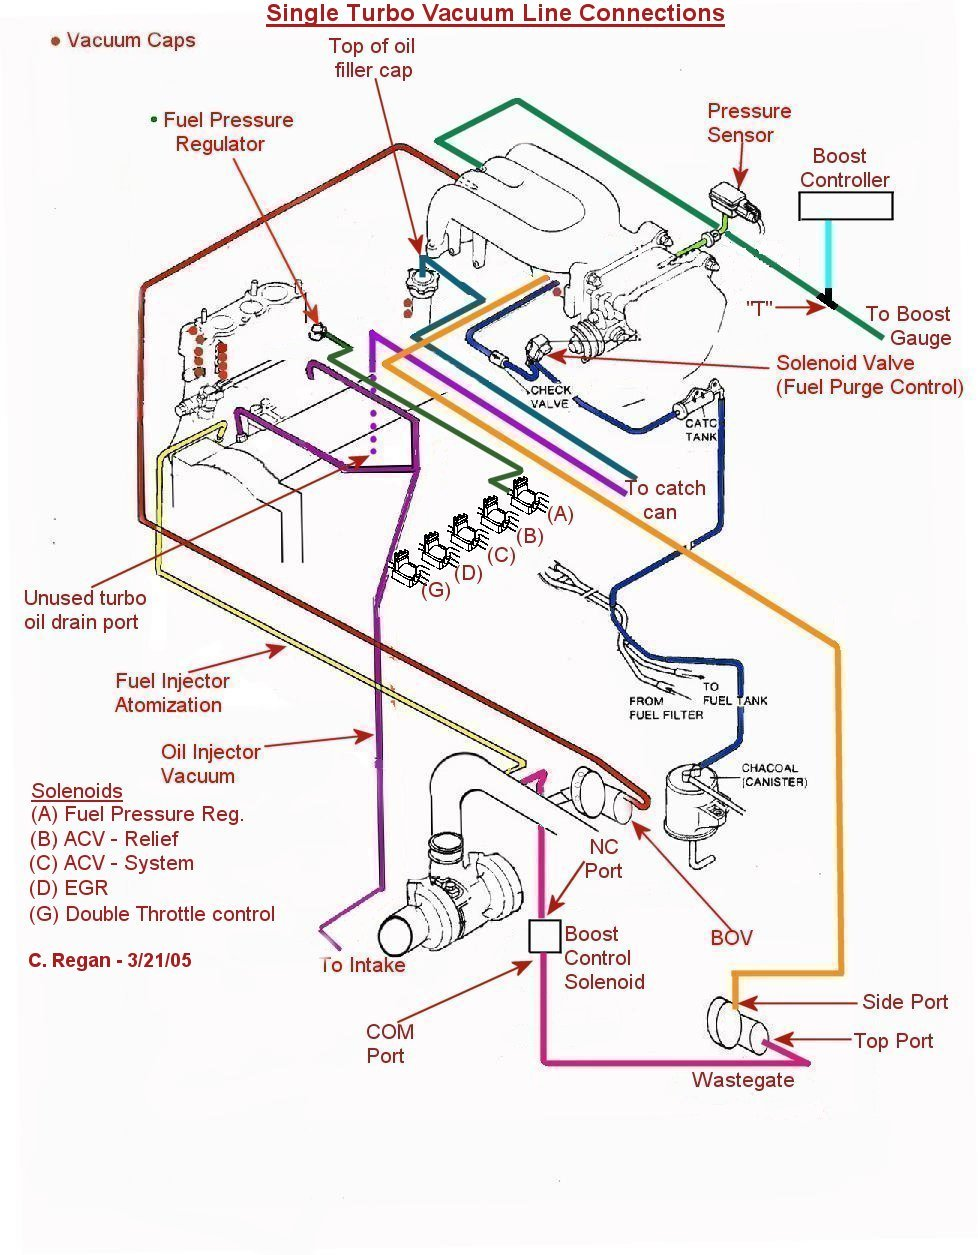 1992 Subaru Legacy Heater Wiring Schematic Simple Guide About Engine Diagram Images Gallery Rotary Wiki